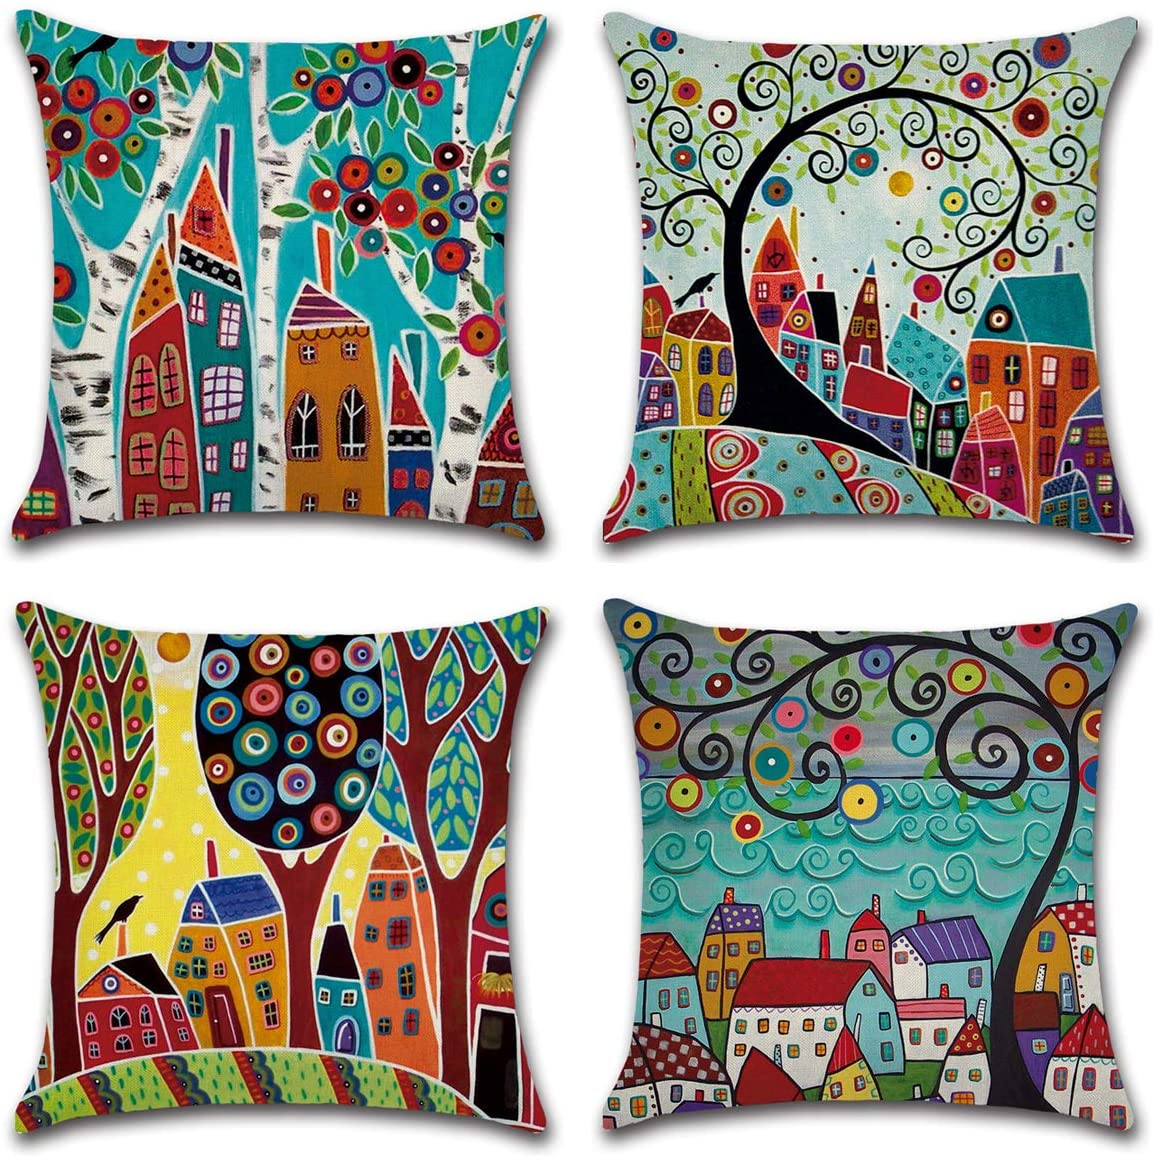 Throw Pillow Covers 18x18 Set of 4 Painted Trees Square Farmhouse Pillow Covers for Home Decorative-Soft Cotton Linen Outdoor Cushion Covers Pillow Cases for Couch Sofa Bedroom Living Room Car